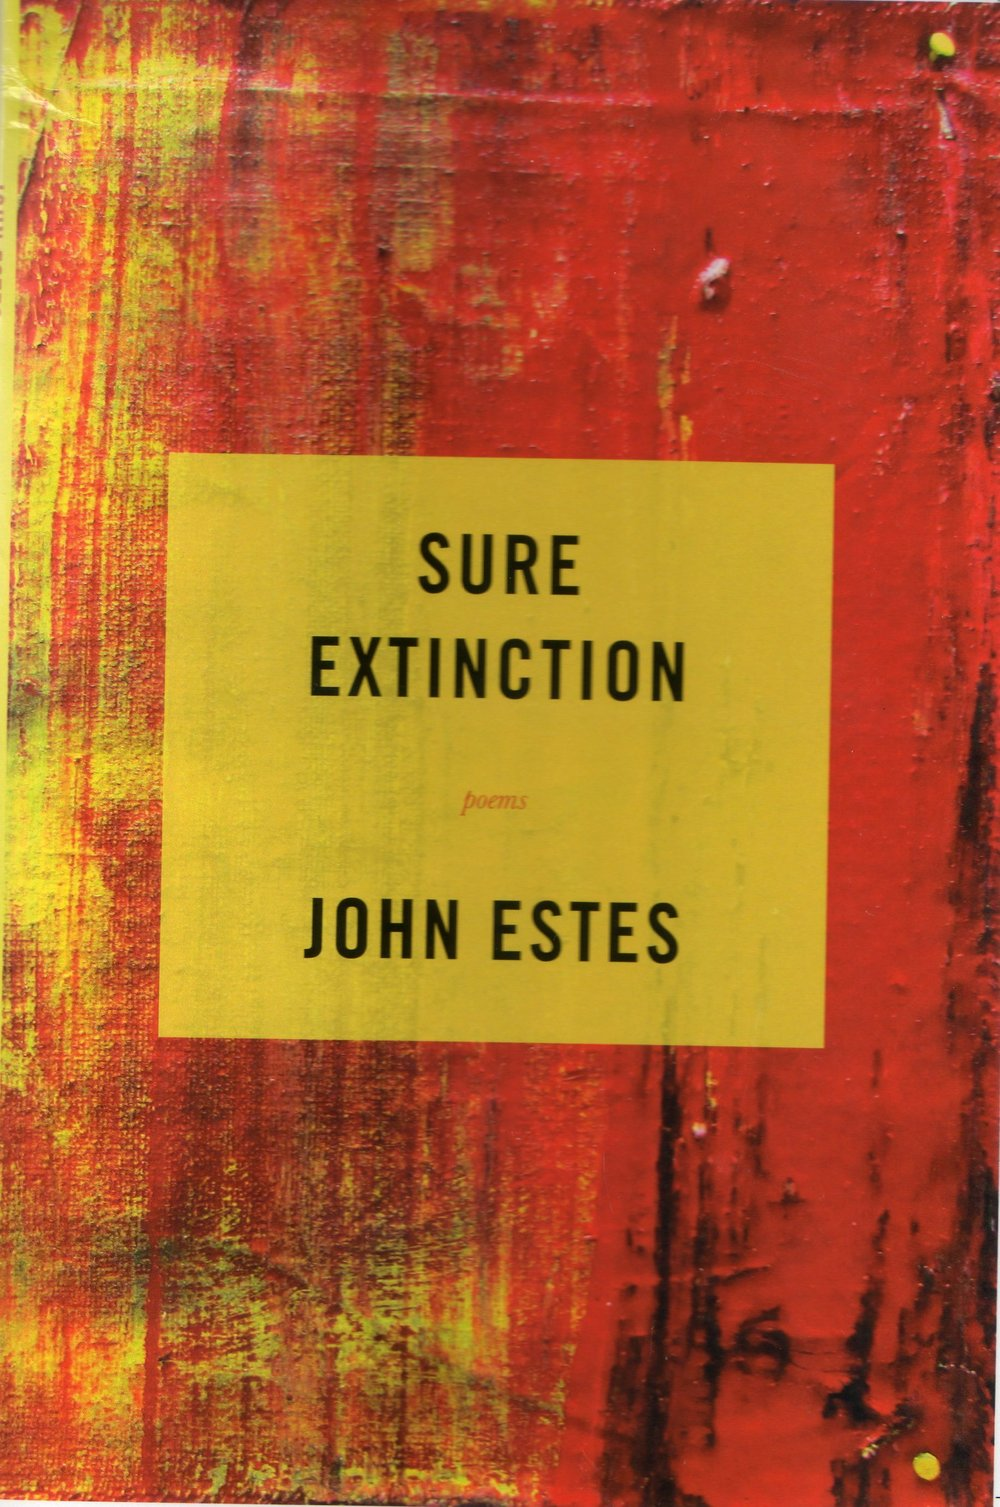 Sure-Extinction.jpeg